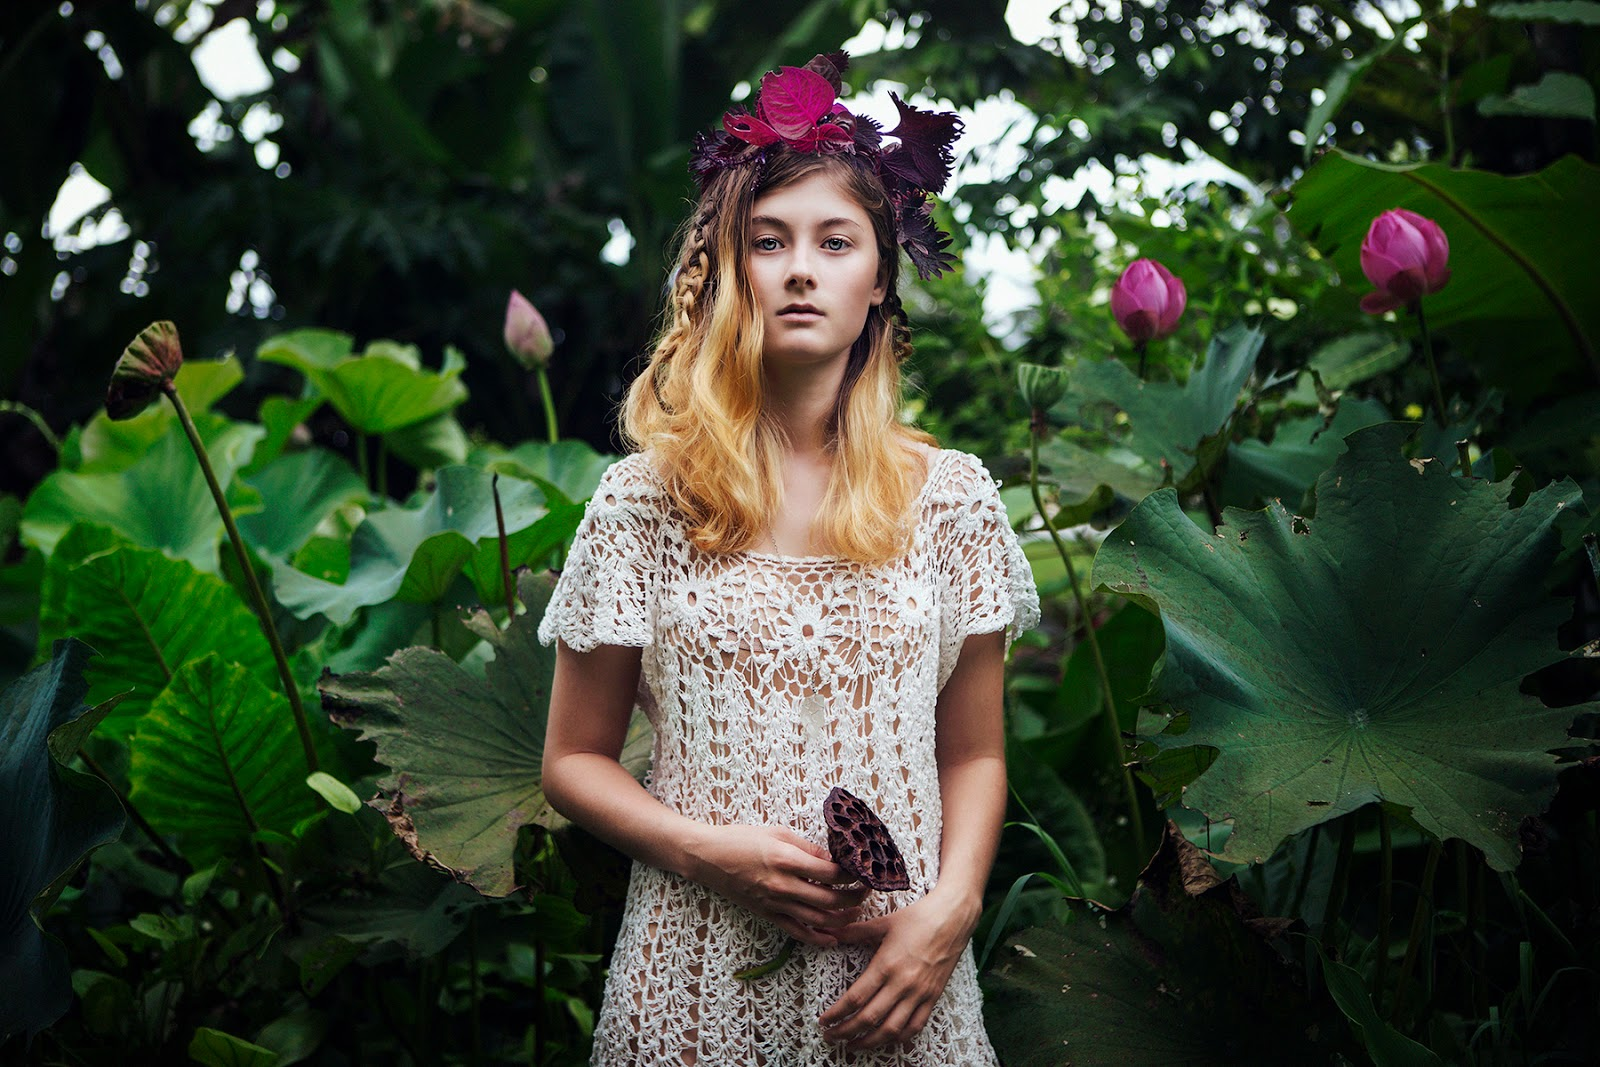 bella kotak photography landscape portrait women water flowers